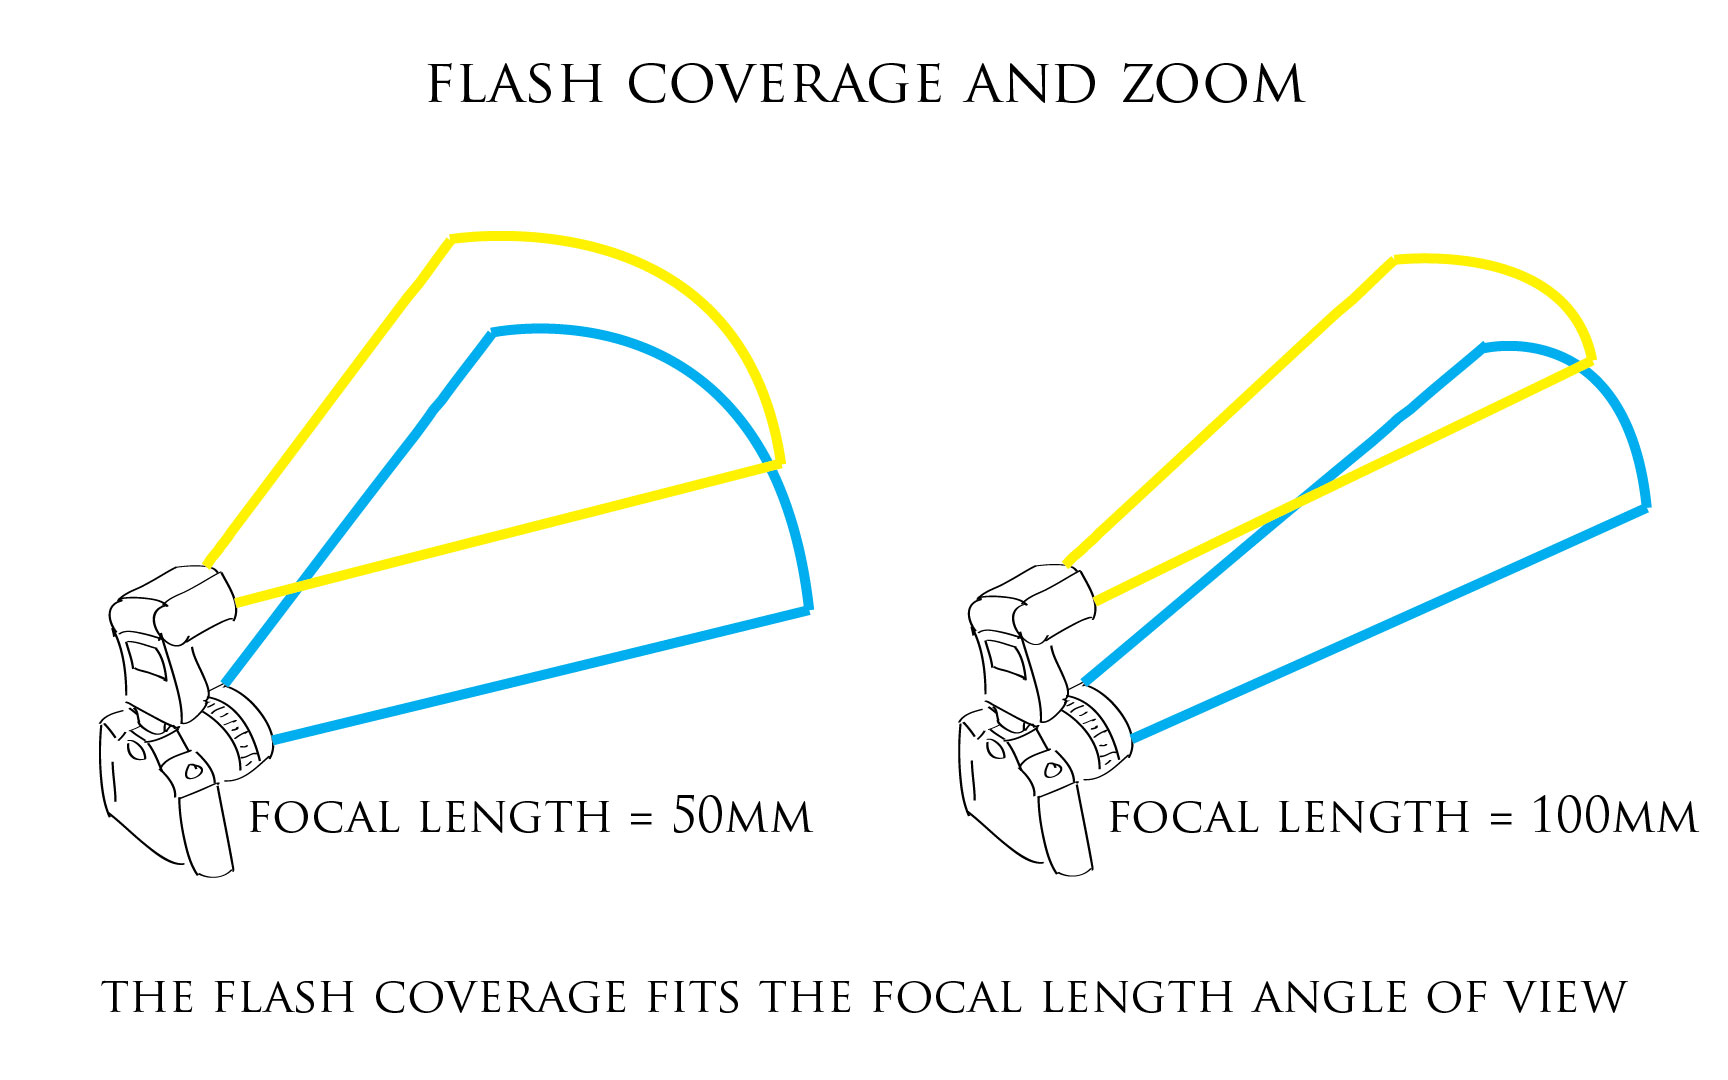 Illustration: Flash coverage and zoom